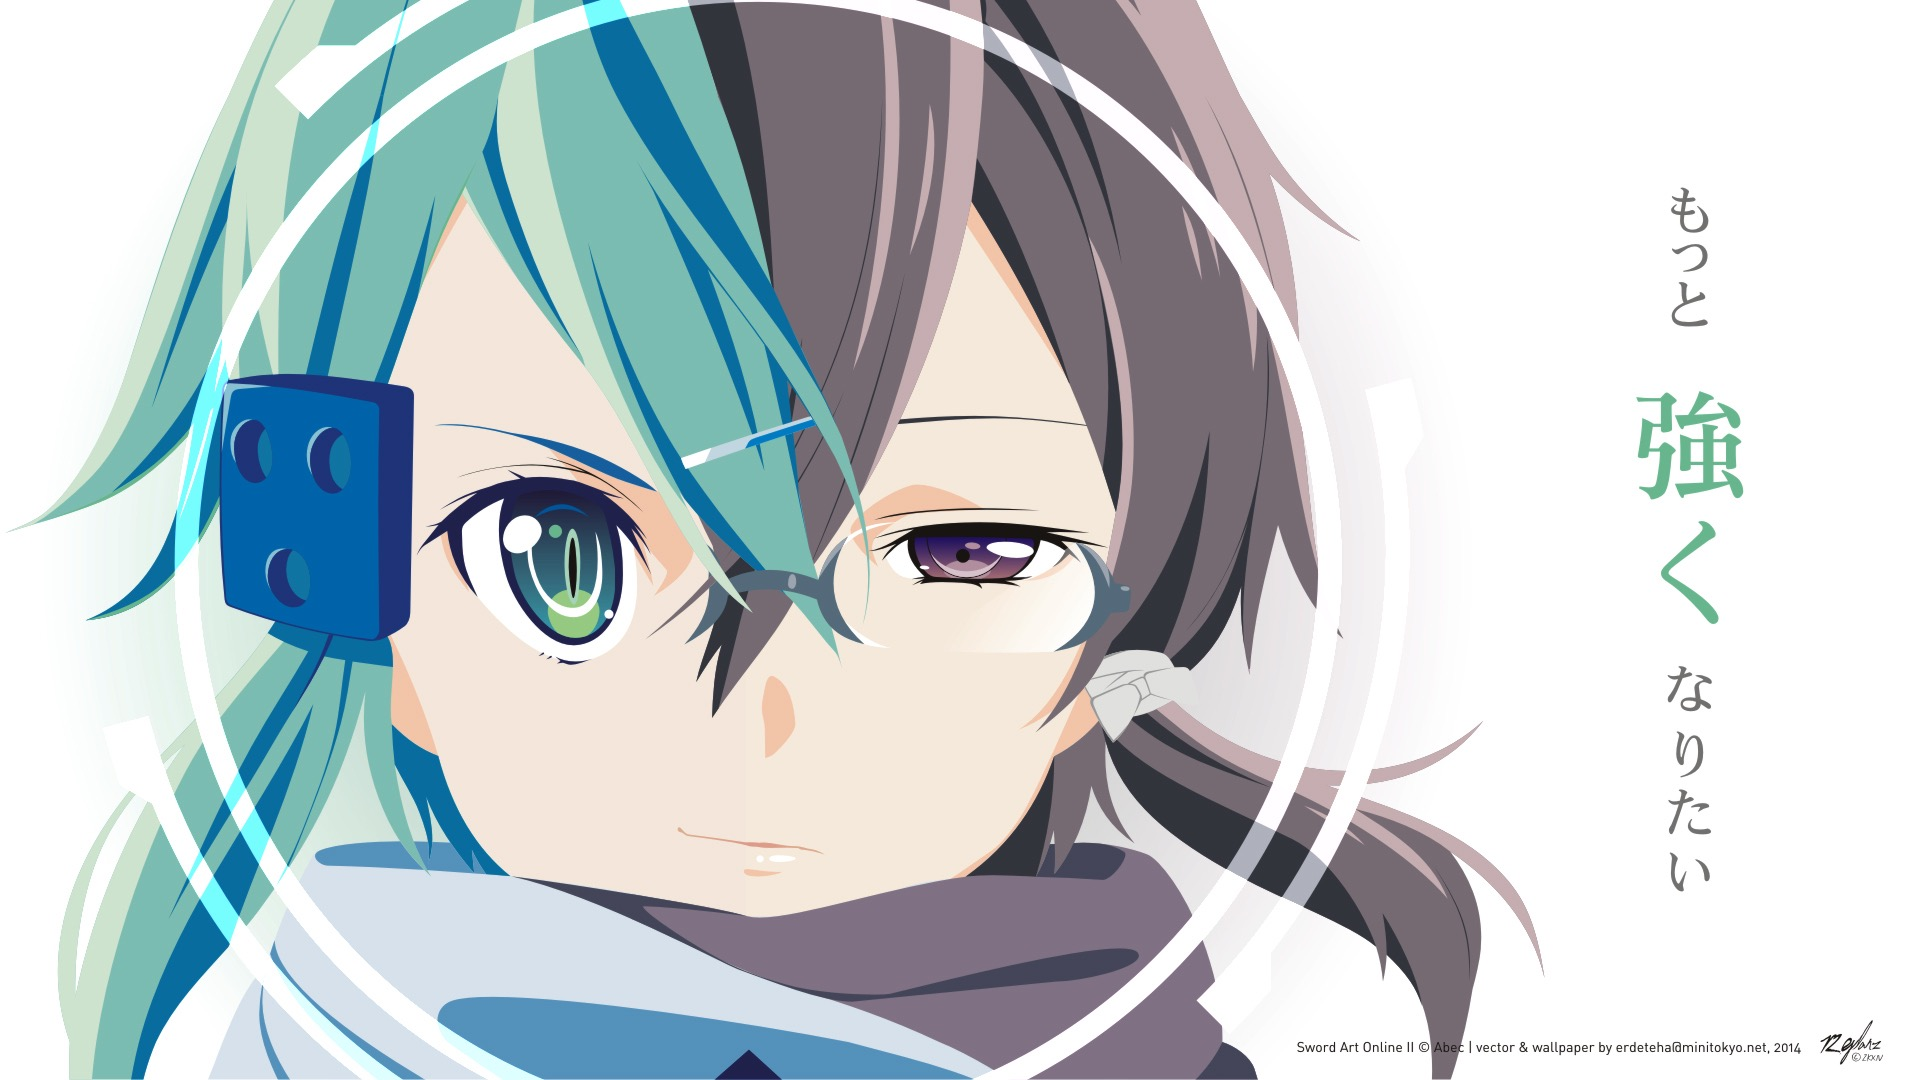 sword art online 2 wallpaper for android